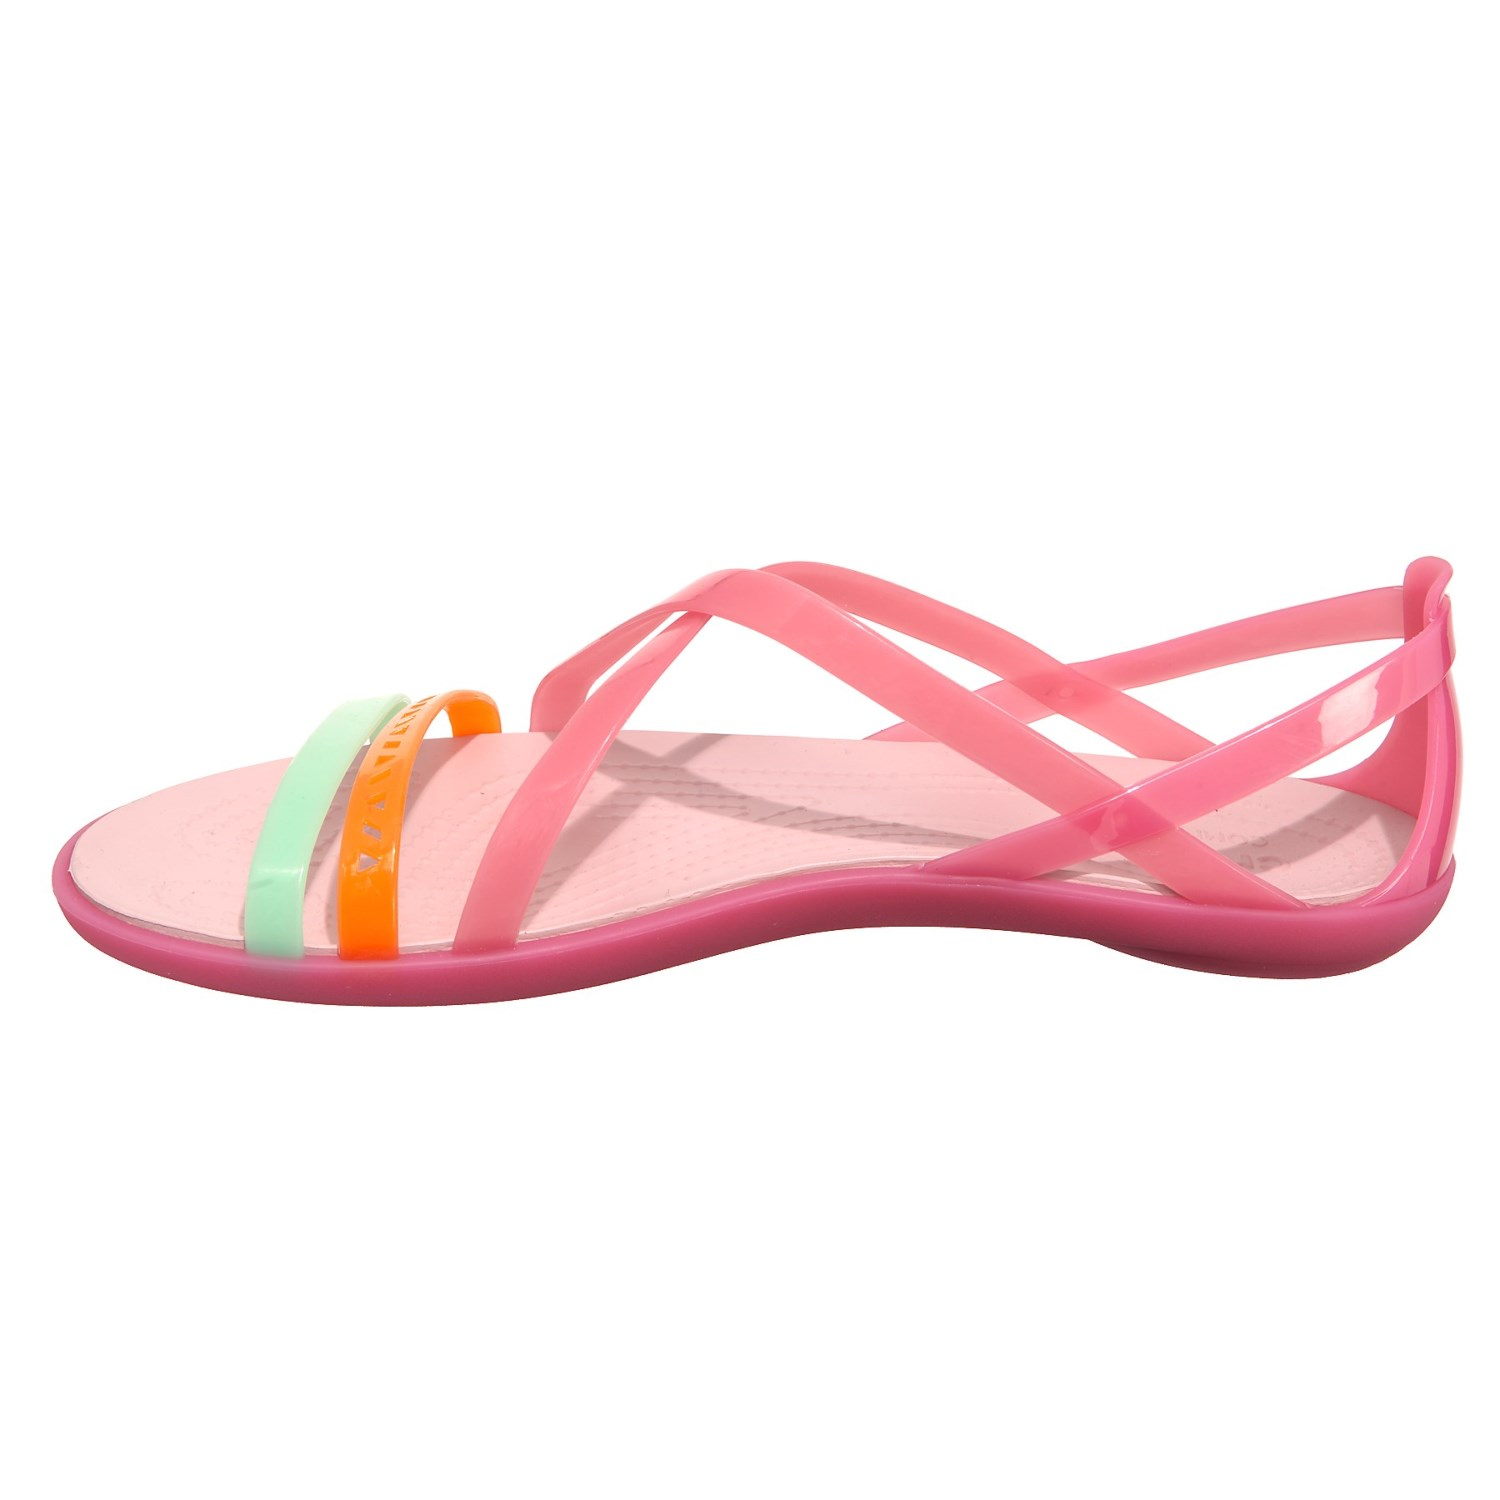 3f11bb2daf6e Crocs Isabella Cutout Strappy Sandals (For Women) - Save 57%